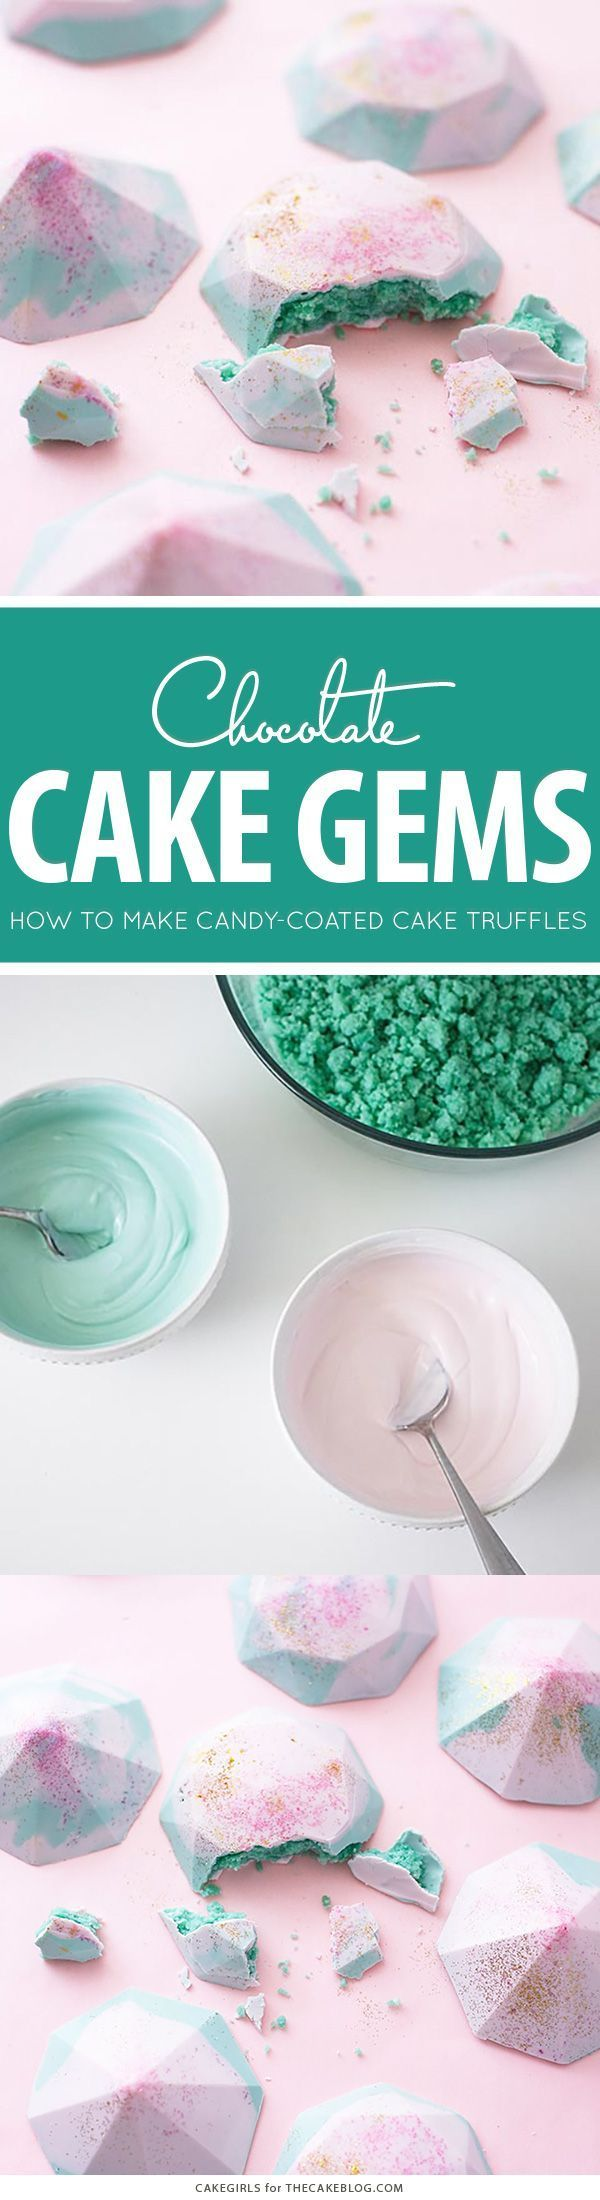 Cake Gems  How To Make Gemshaped Chocolate Truffles Filled With Cake  By